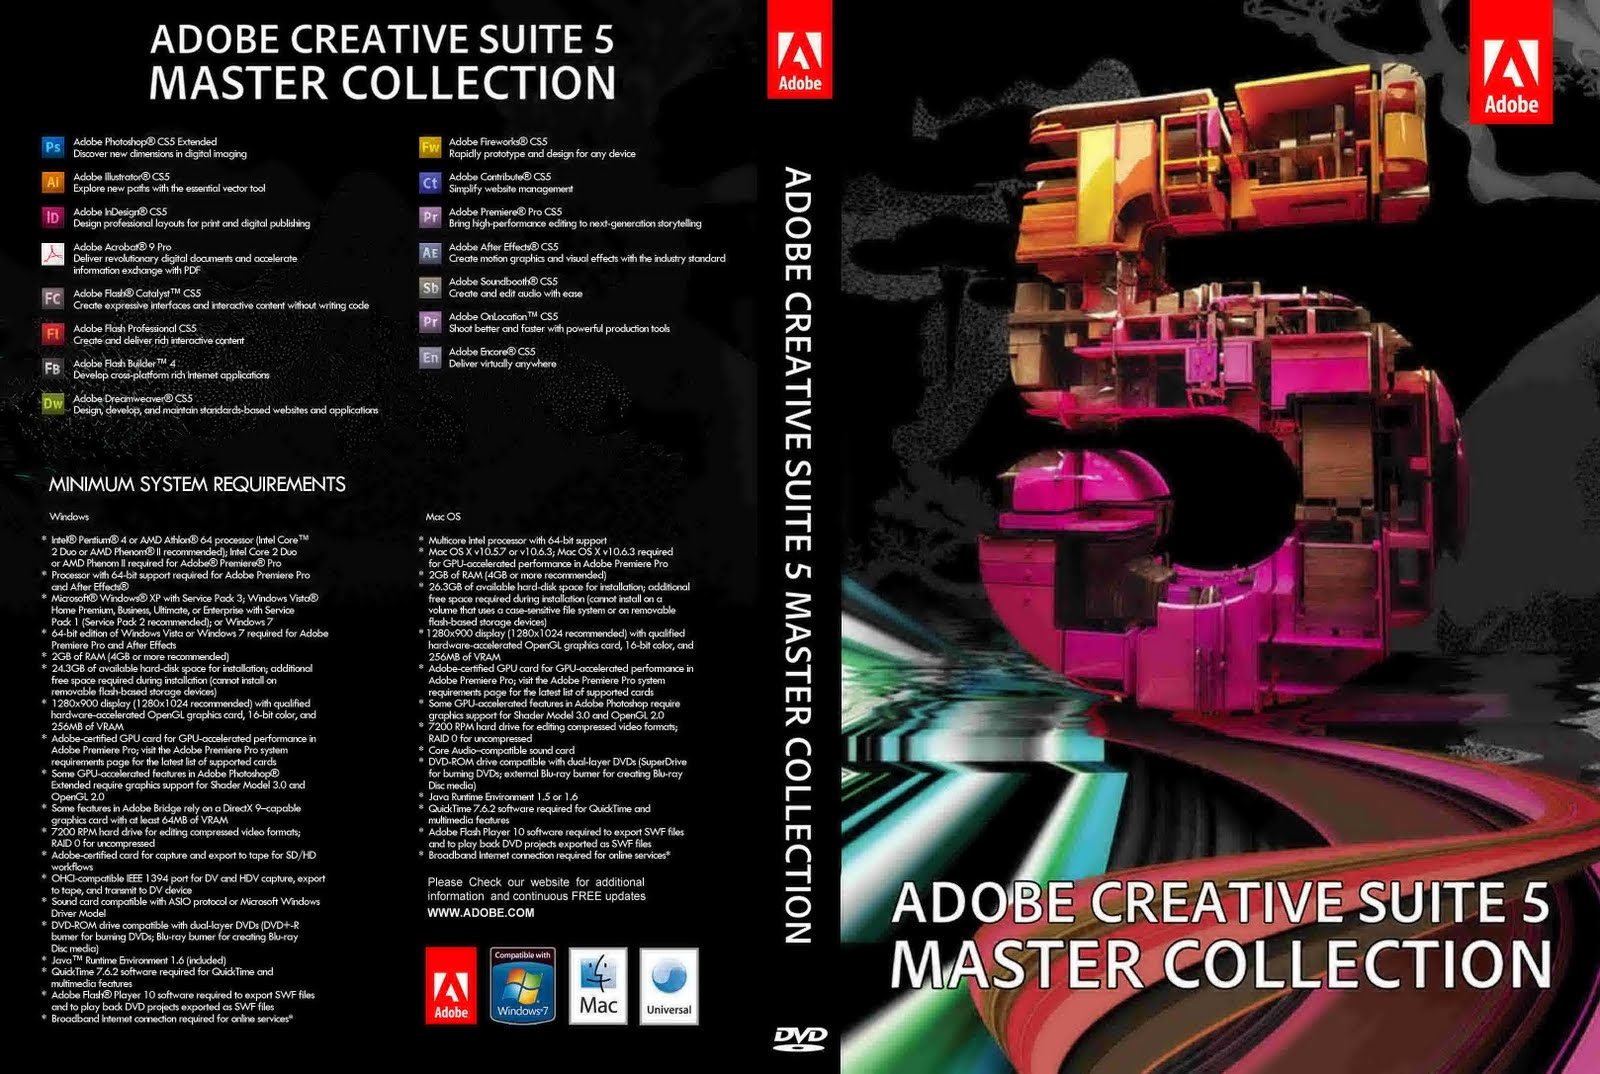 Adobe creative suite 5 master collection 2017 pc serial number mac